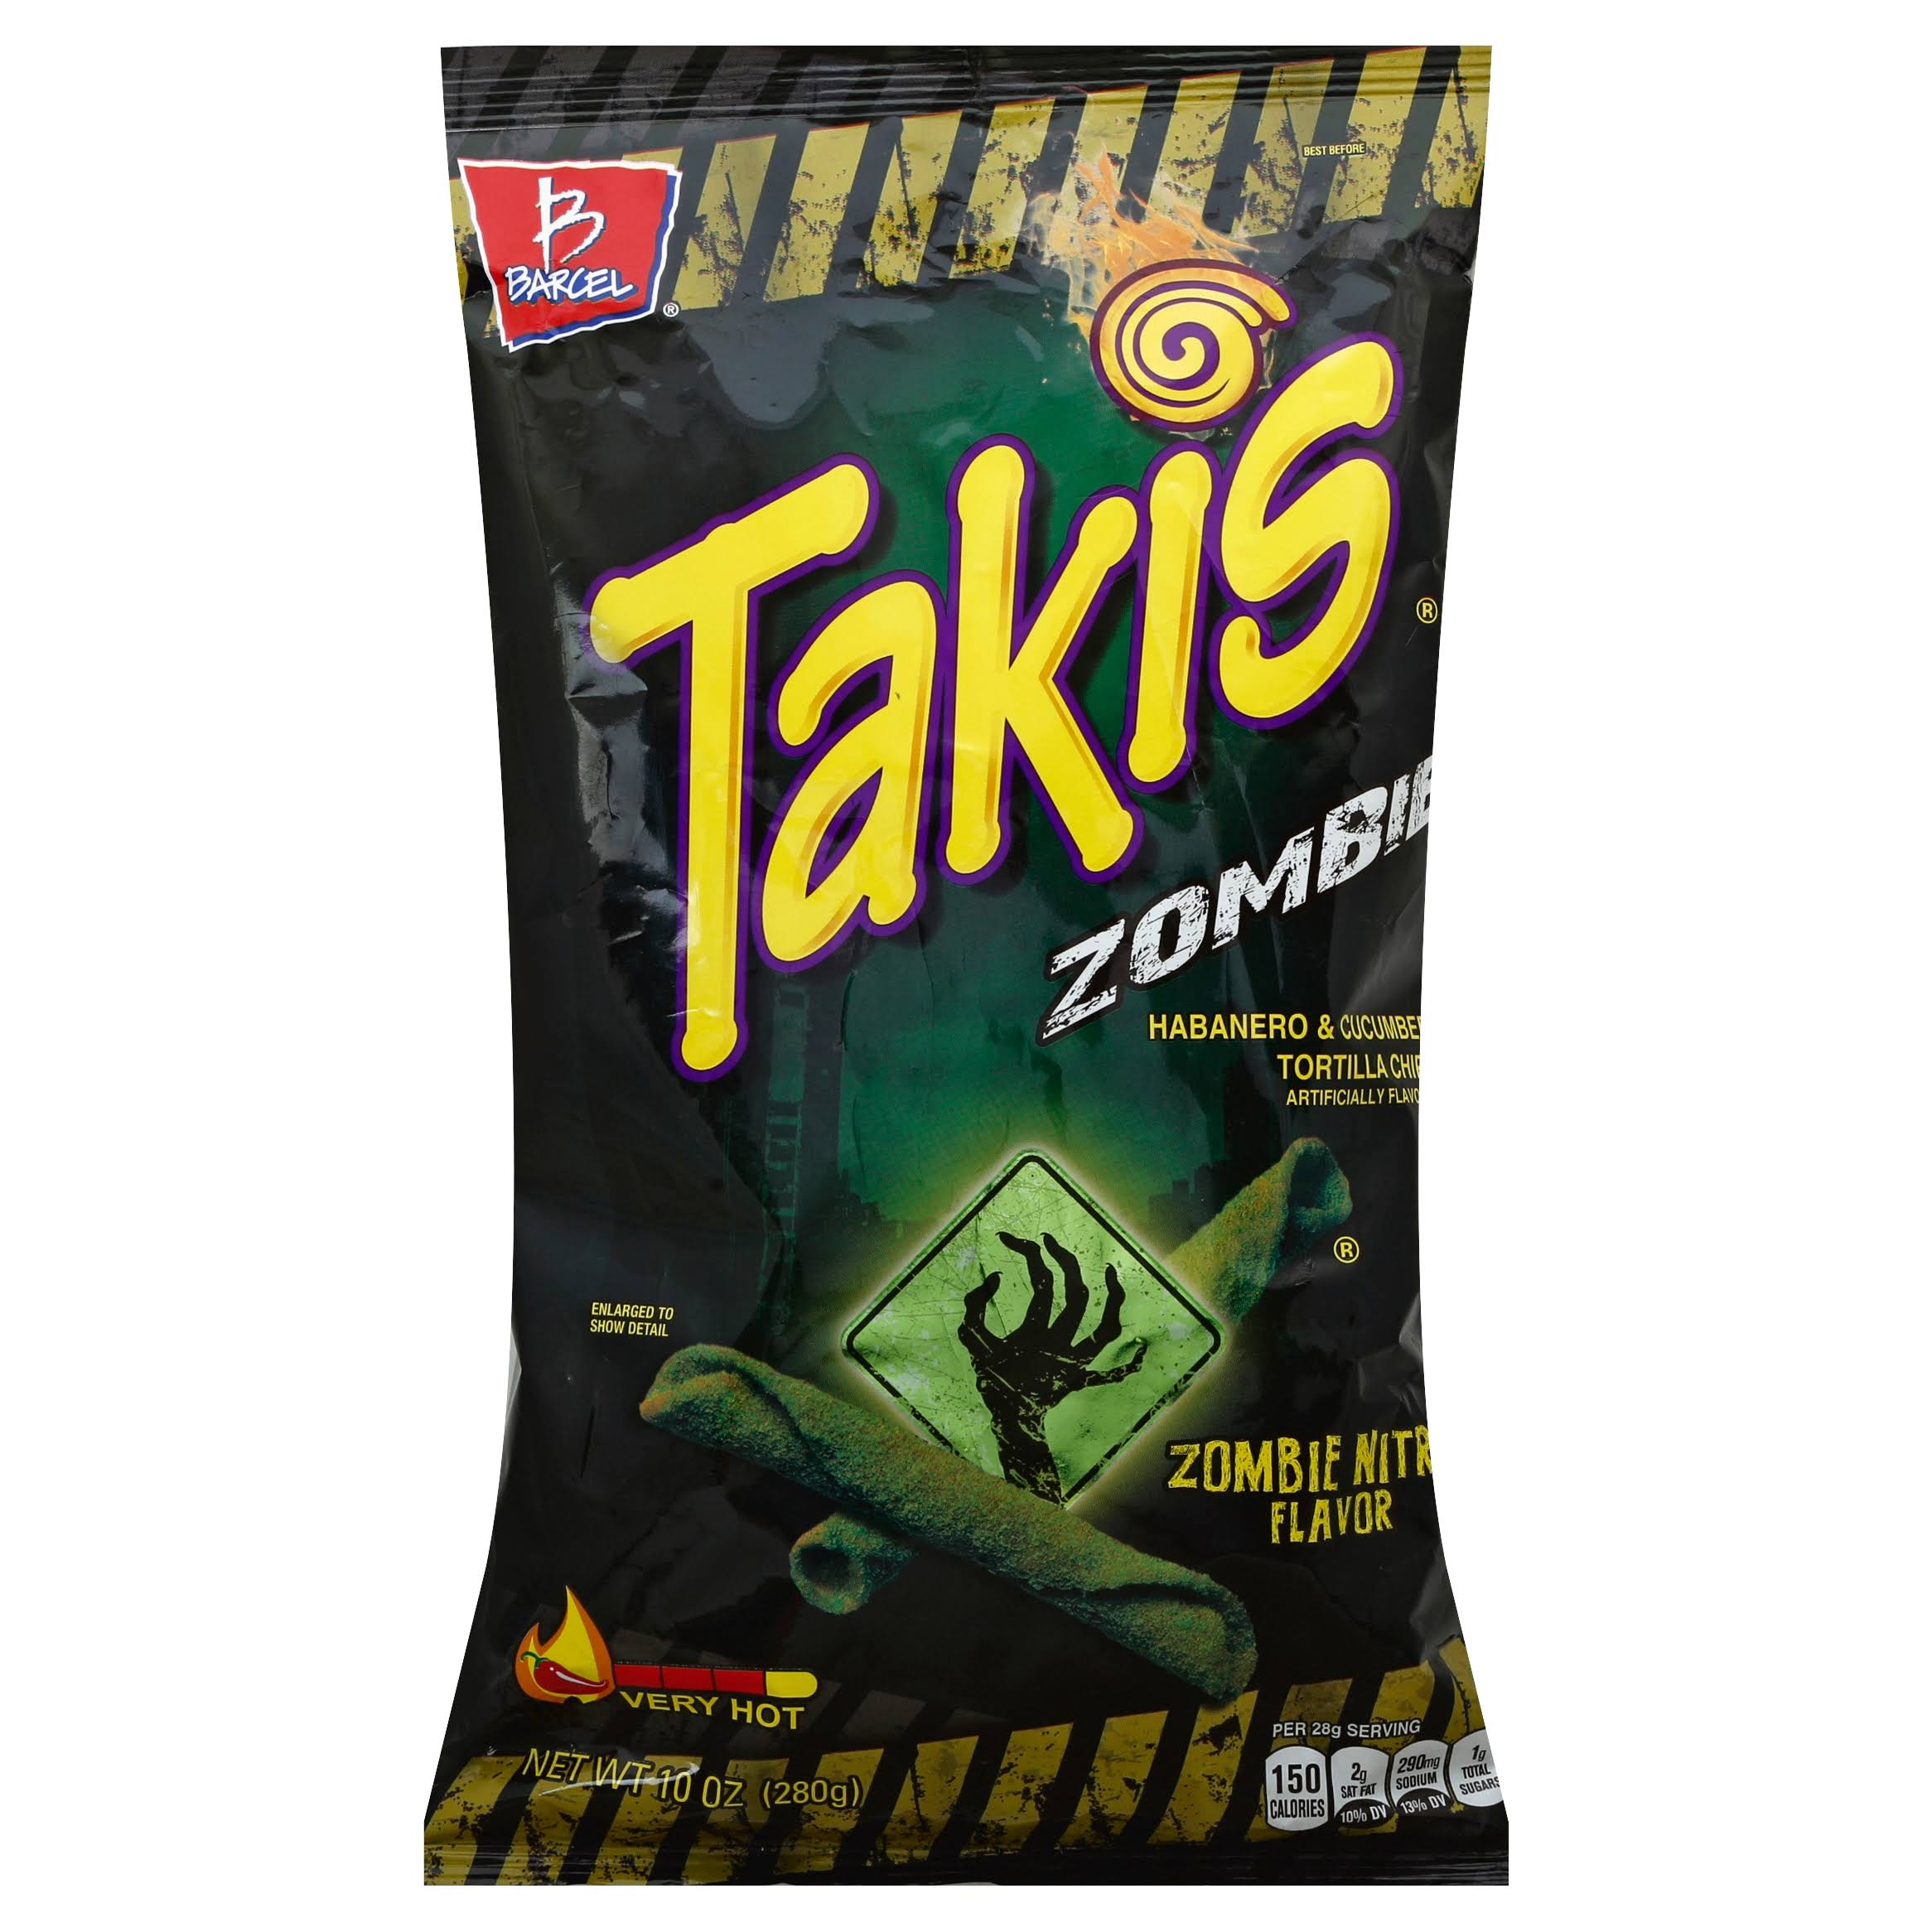 Takis Tortilla Chips, Zombie Nitro Flavor, Very Hot - 10 oz